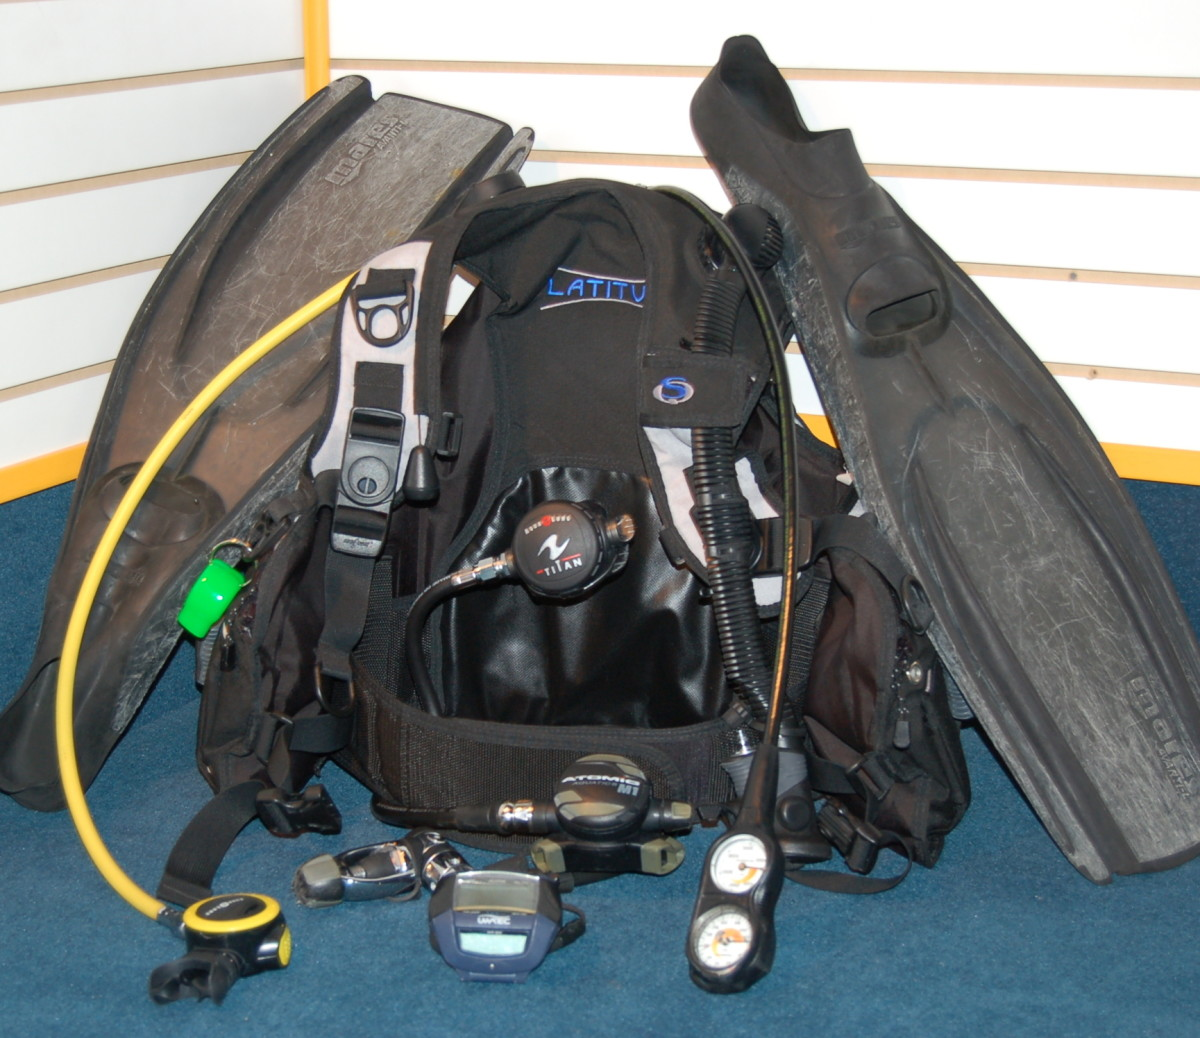 Showing scuba gear - Image credit: https://underwaterphantaseas.wordpress.com/tag/used-scuba-gear/